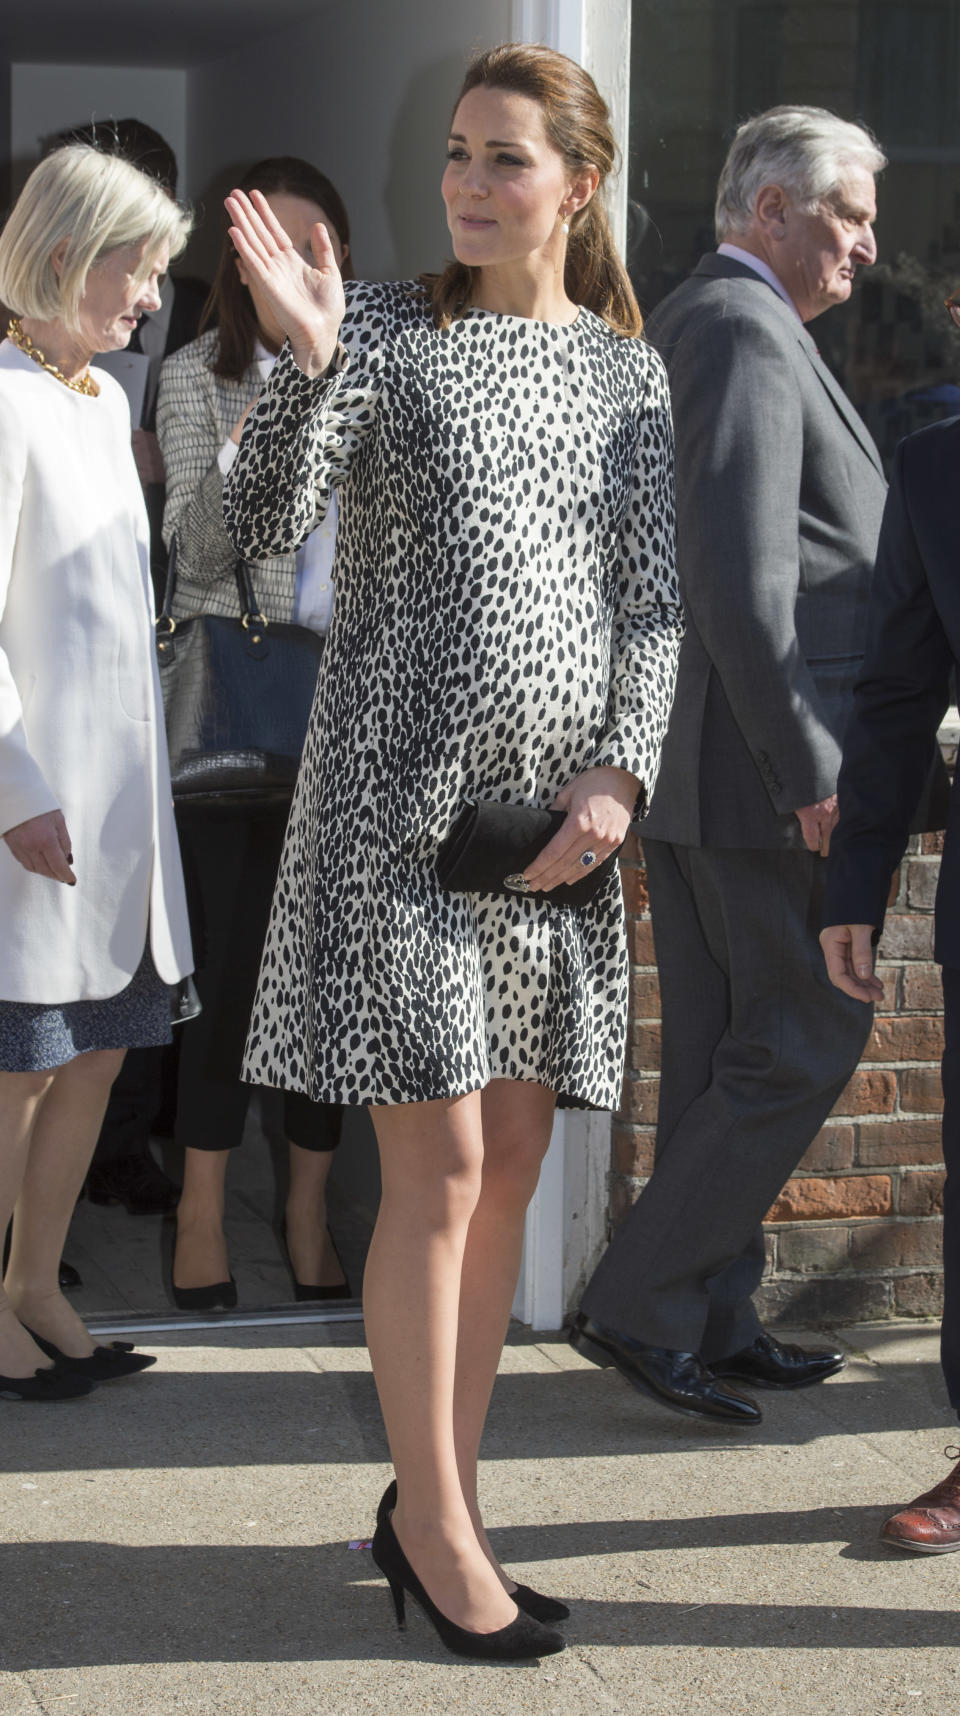 <p>On March 11, 2015 the Duchess visited the Turner gallery in Margate decked in a leopard print coat by Hobbs. The Duchess of Cambridge accessorised the look with a black Mulberry clutch. <em>[Photo: Getty]</em> </p>